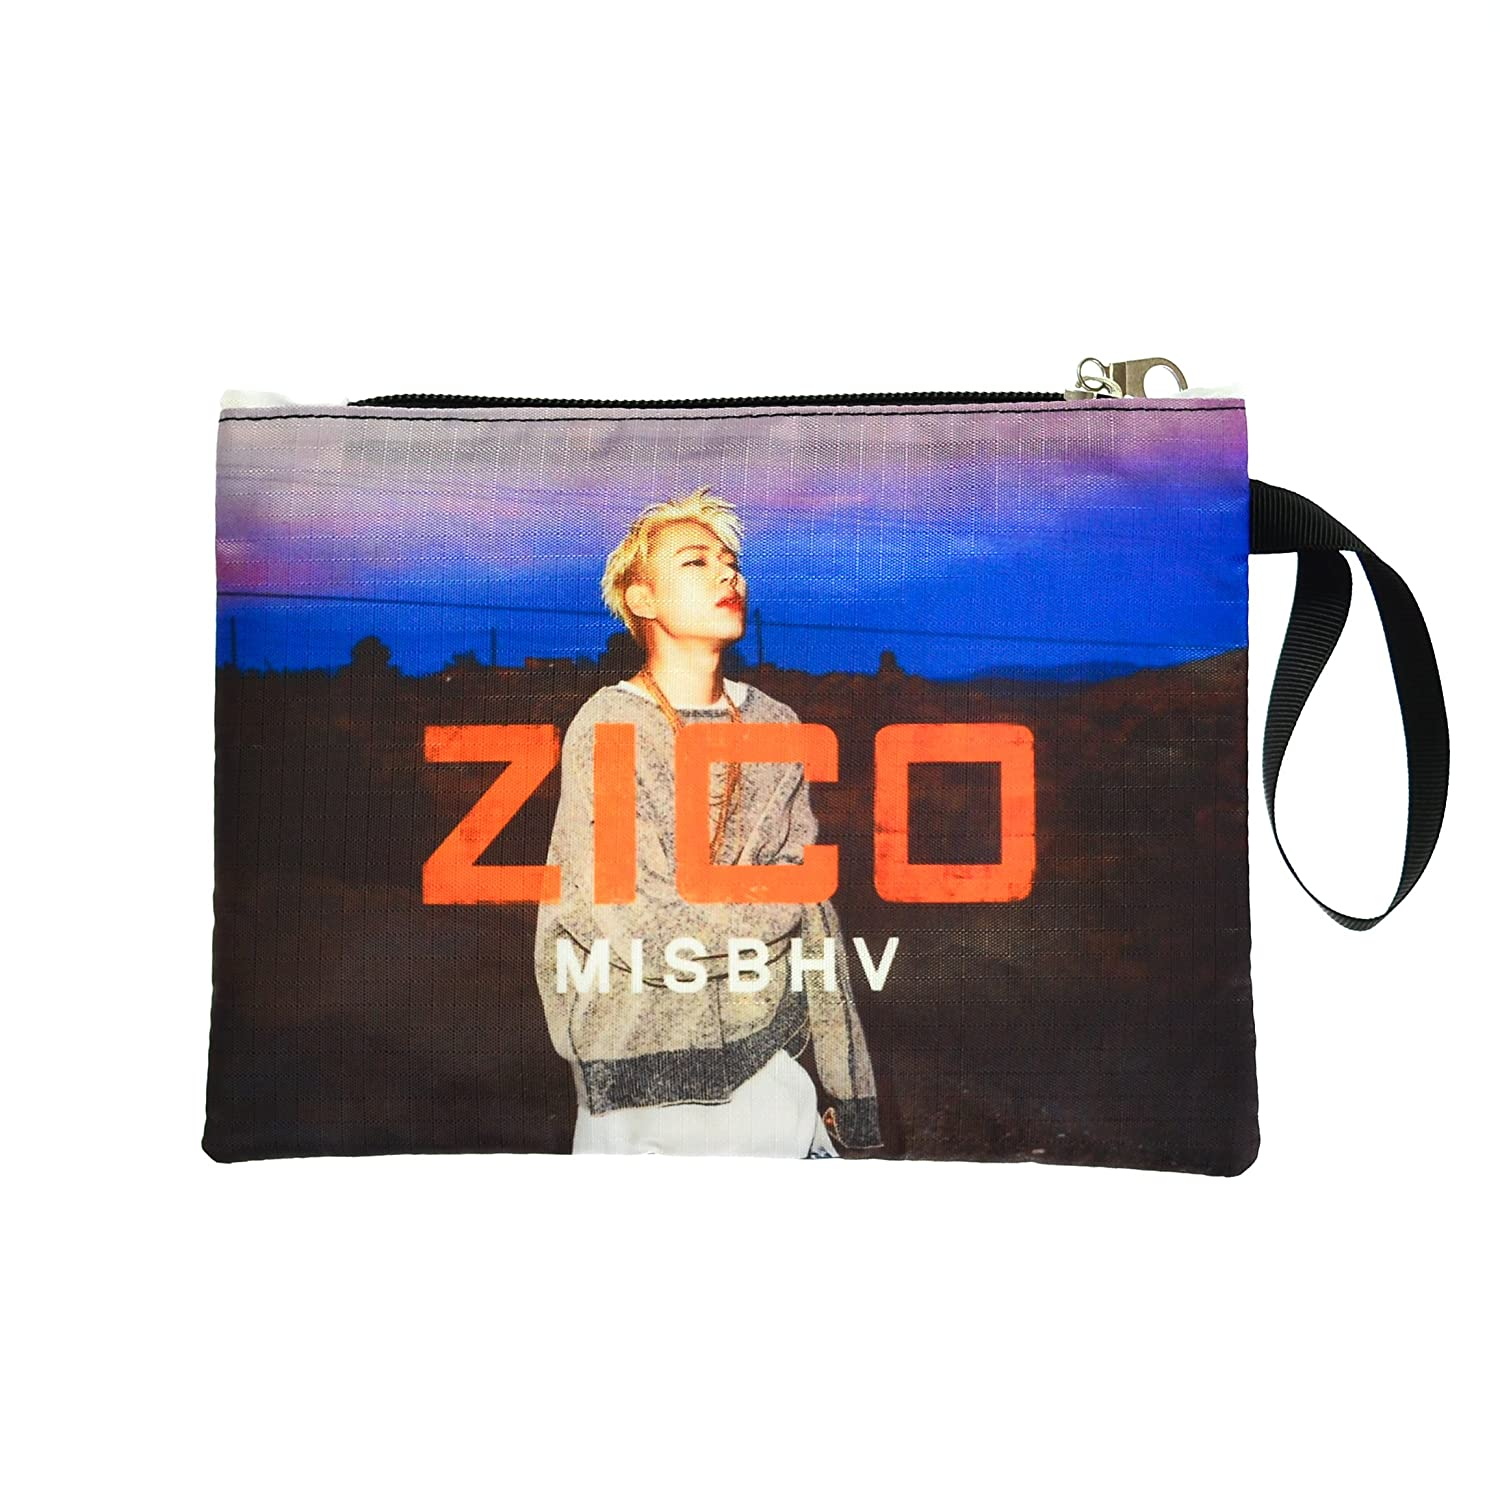 Kpop Zico bags pouch 379